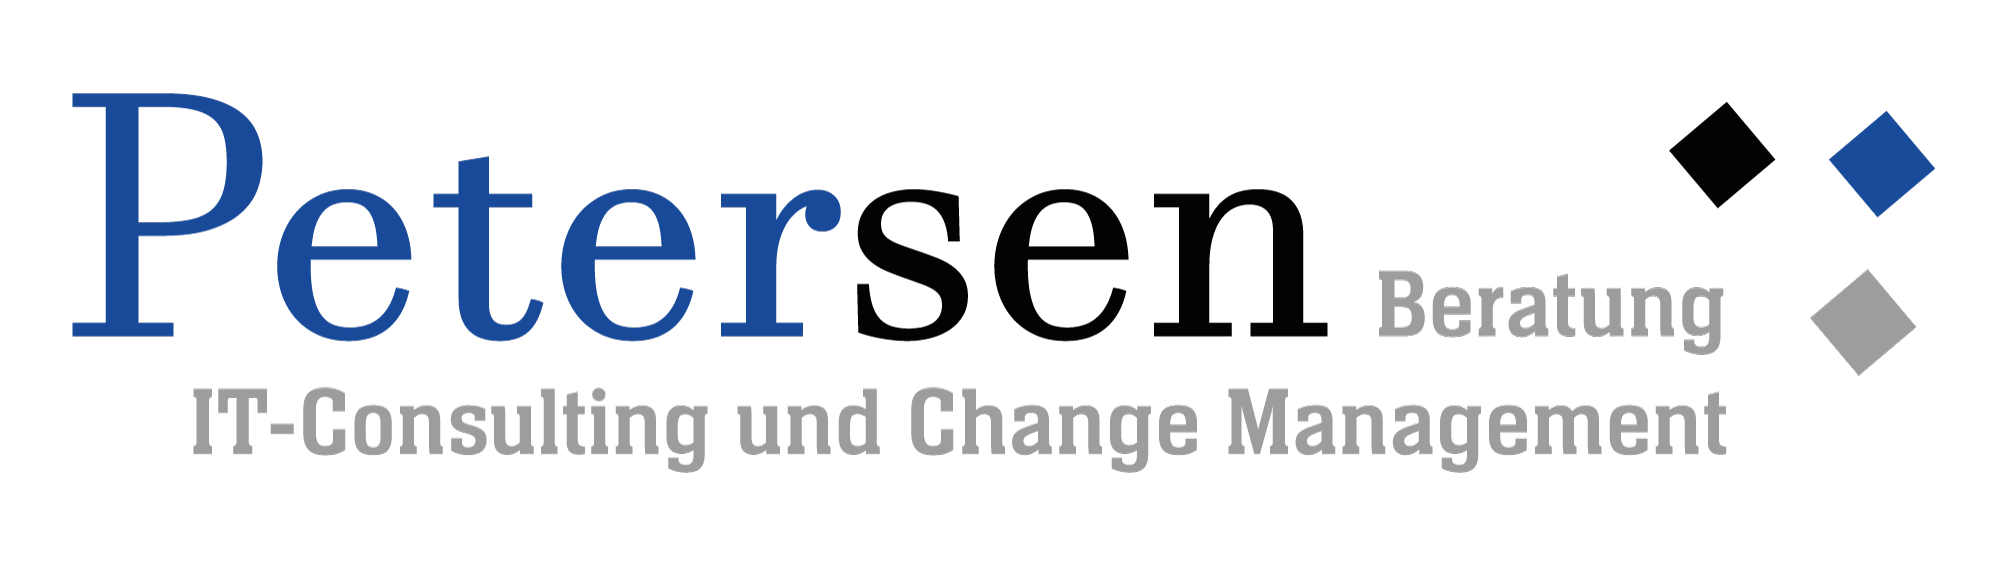 Petersen - Beratung, IT-Consulting und Change Management Logo